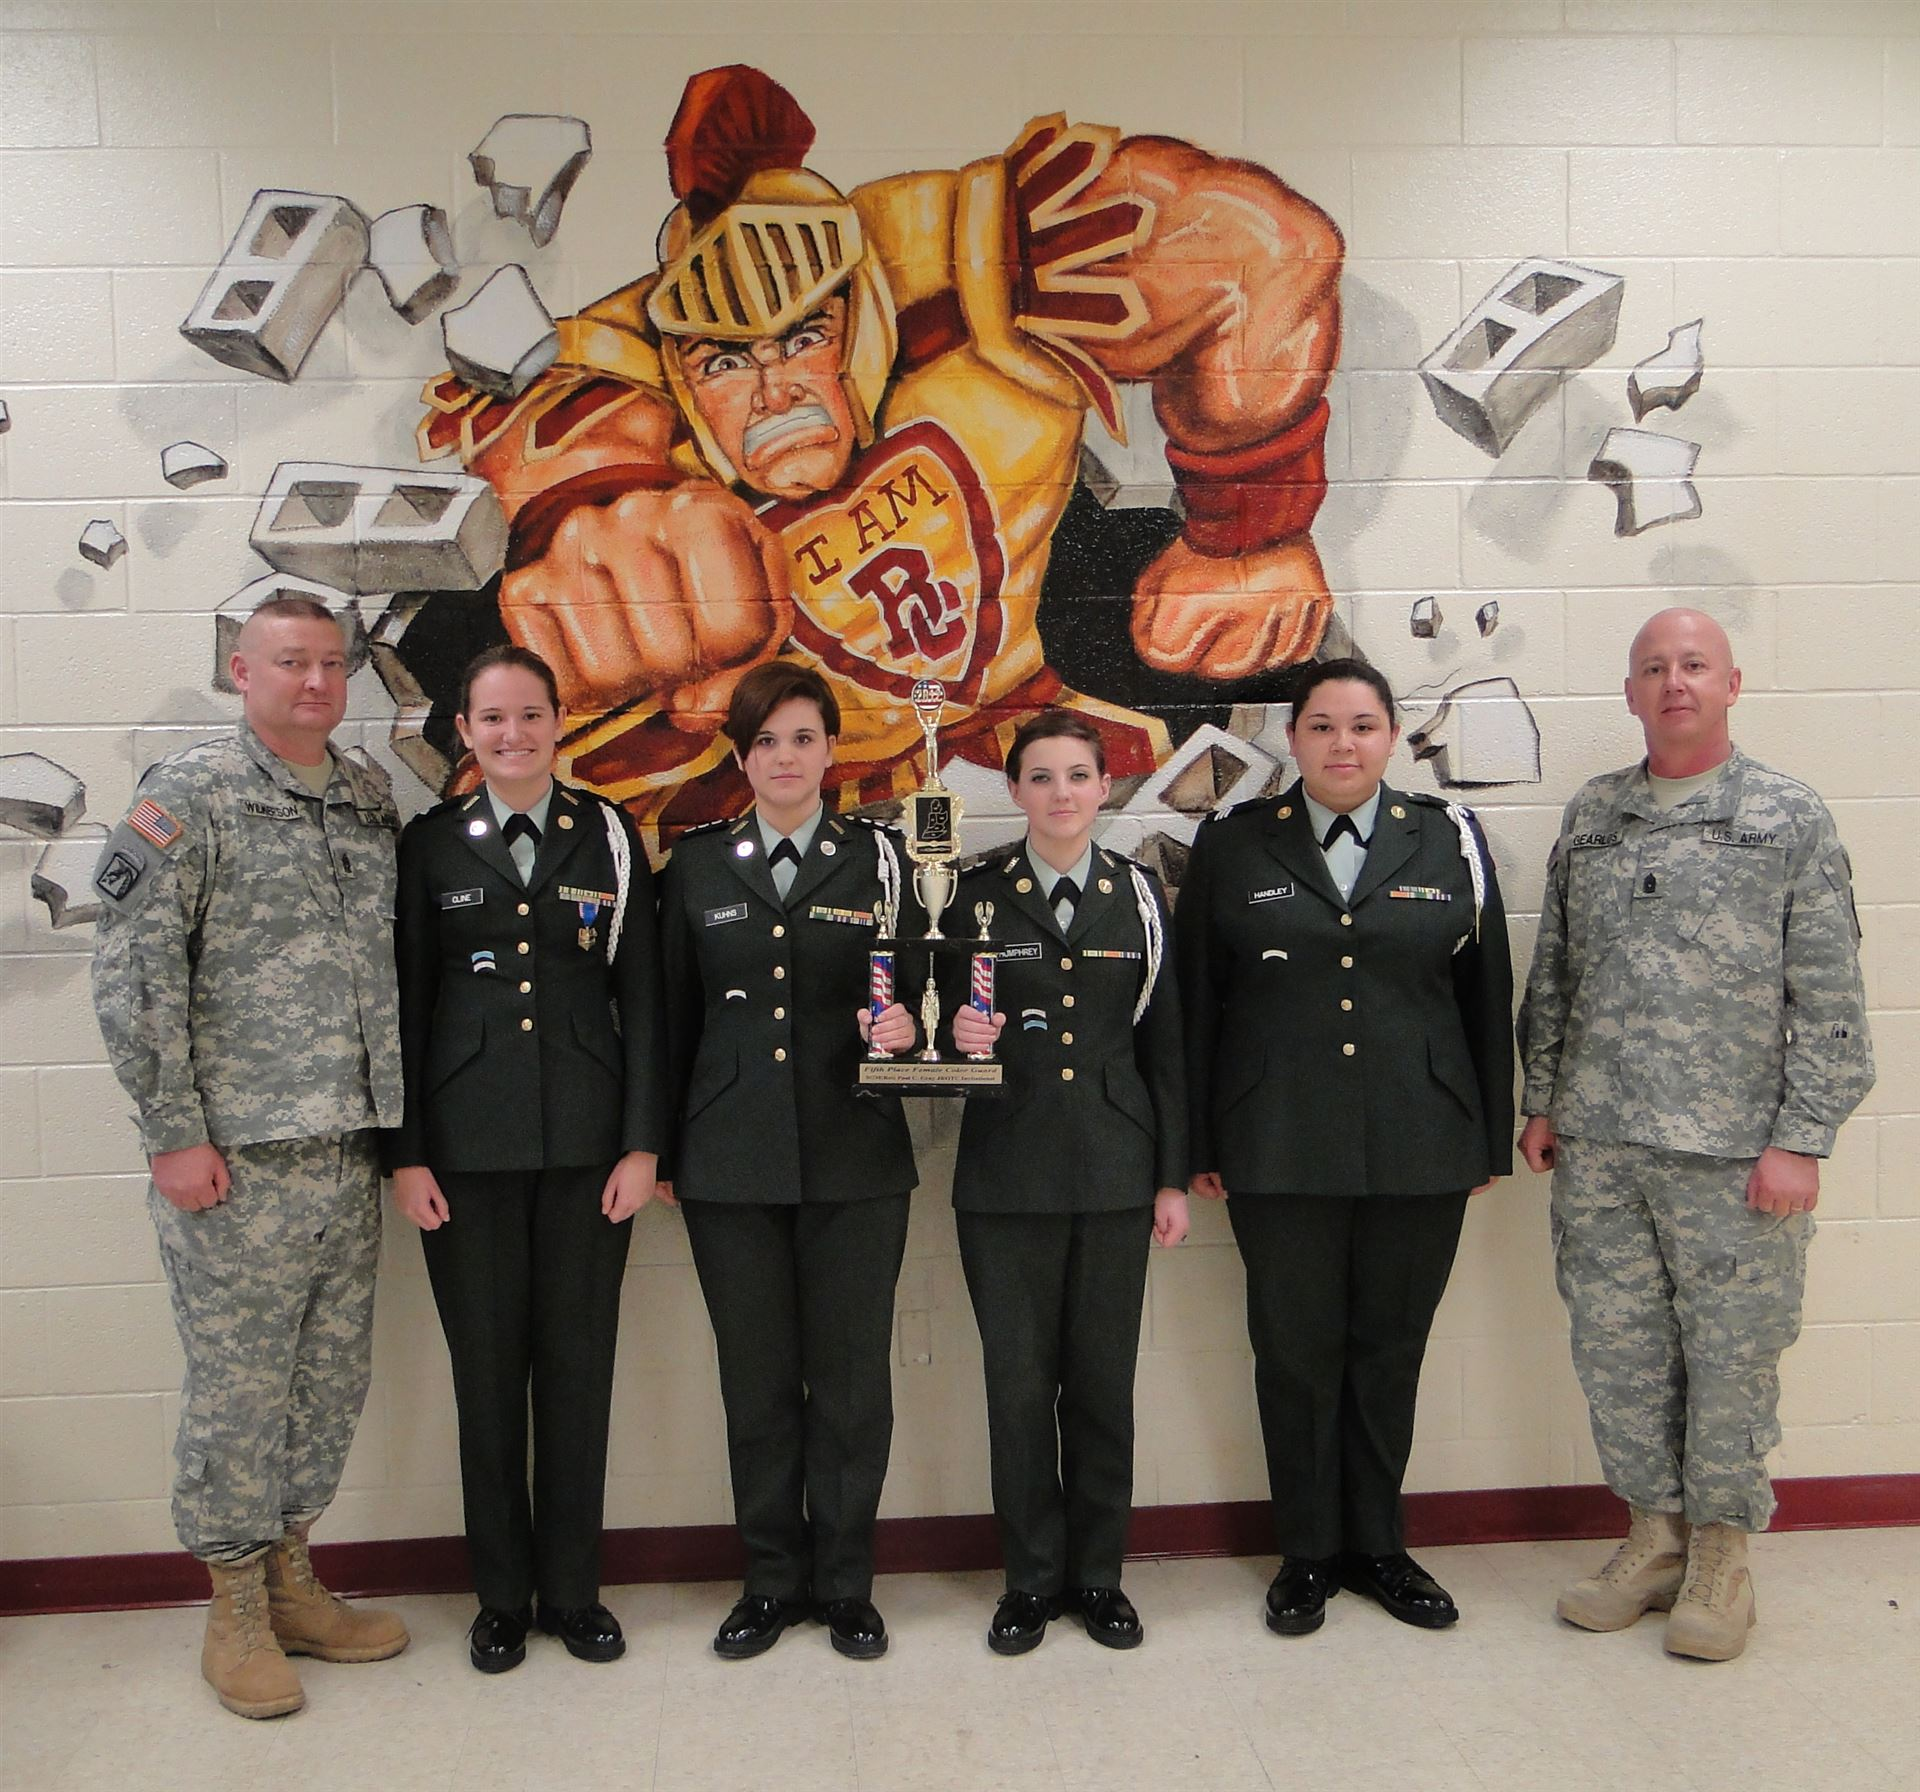 JROTC officers in front of trojan sign